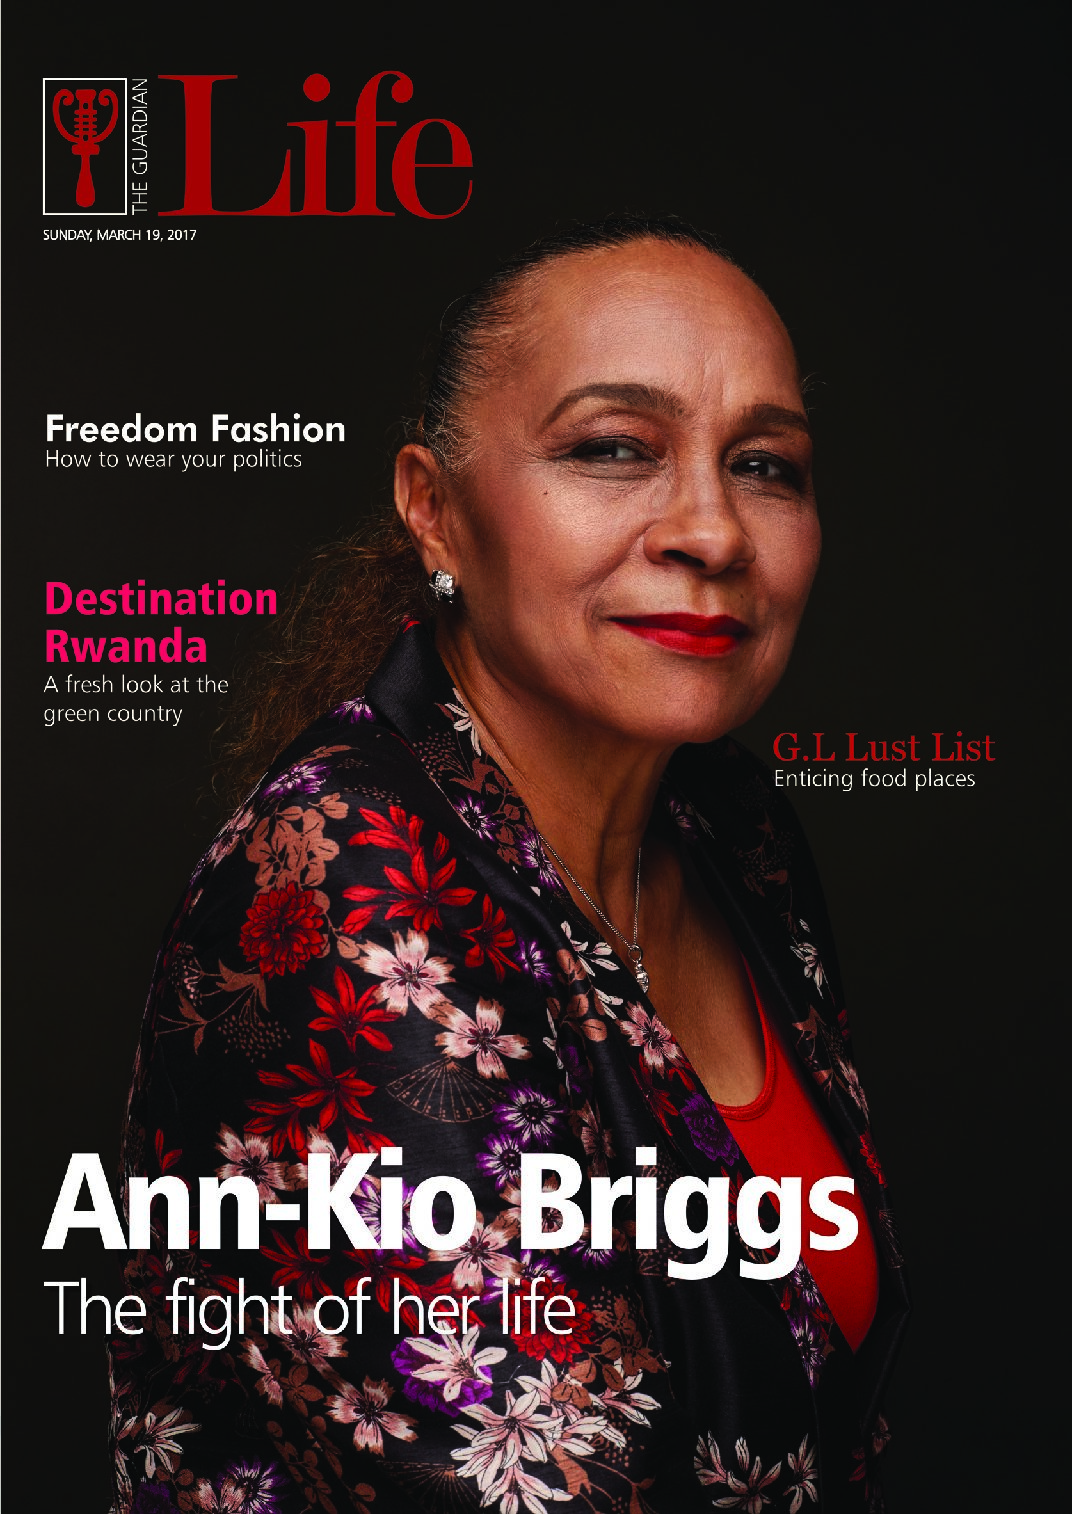 Ann-Kio Briggs- The fight of her life